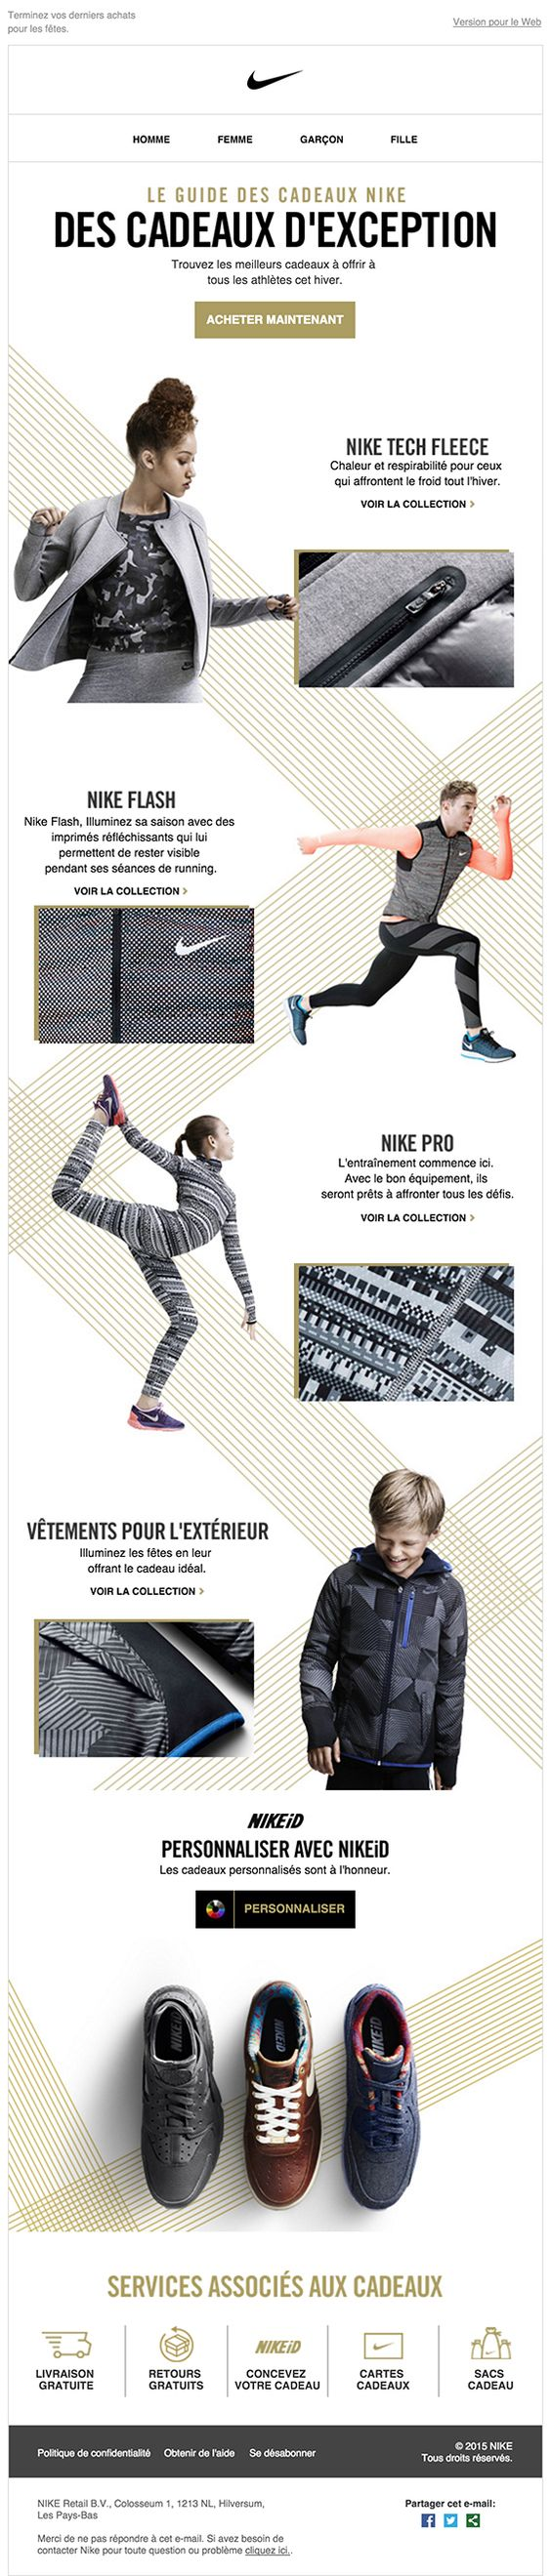 25 Examples of Sportswear Brands\' Marketing Emails - MailBakery